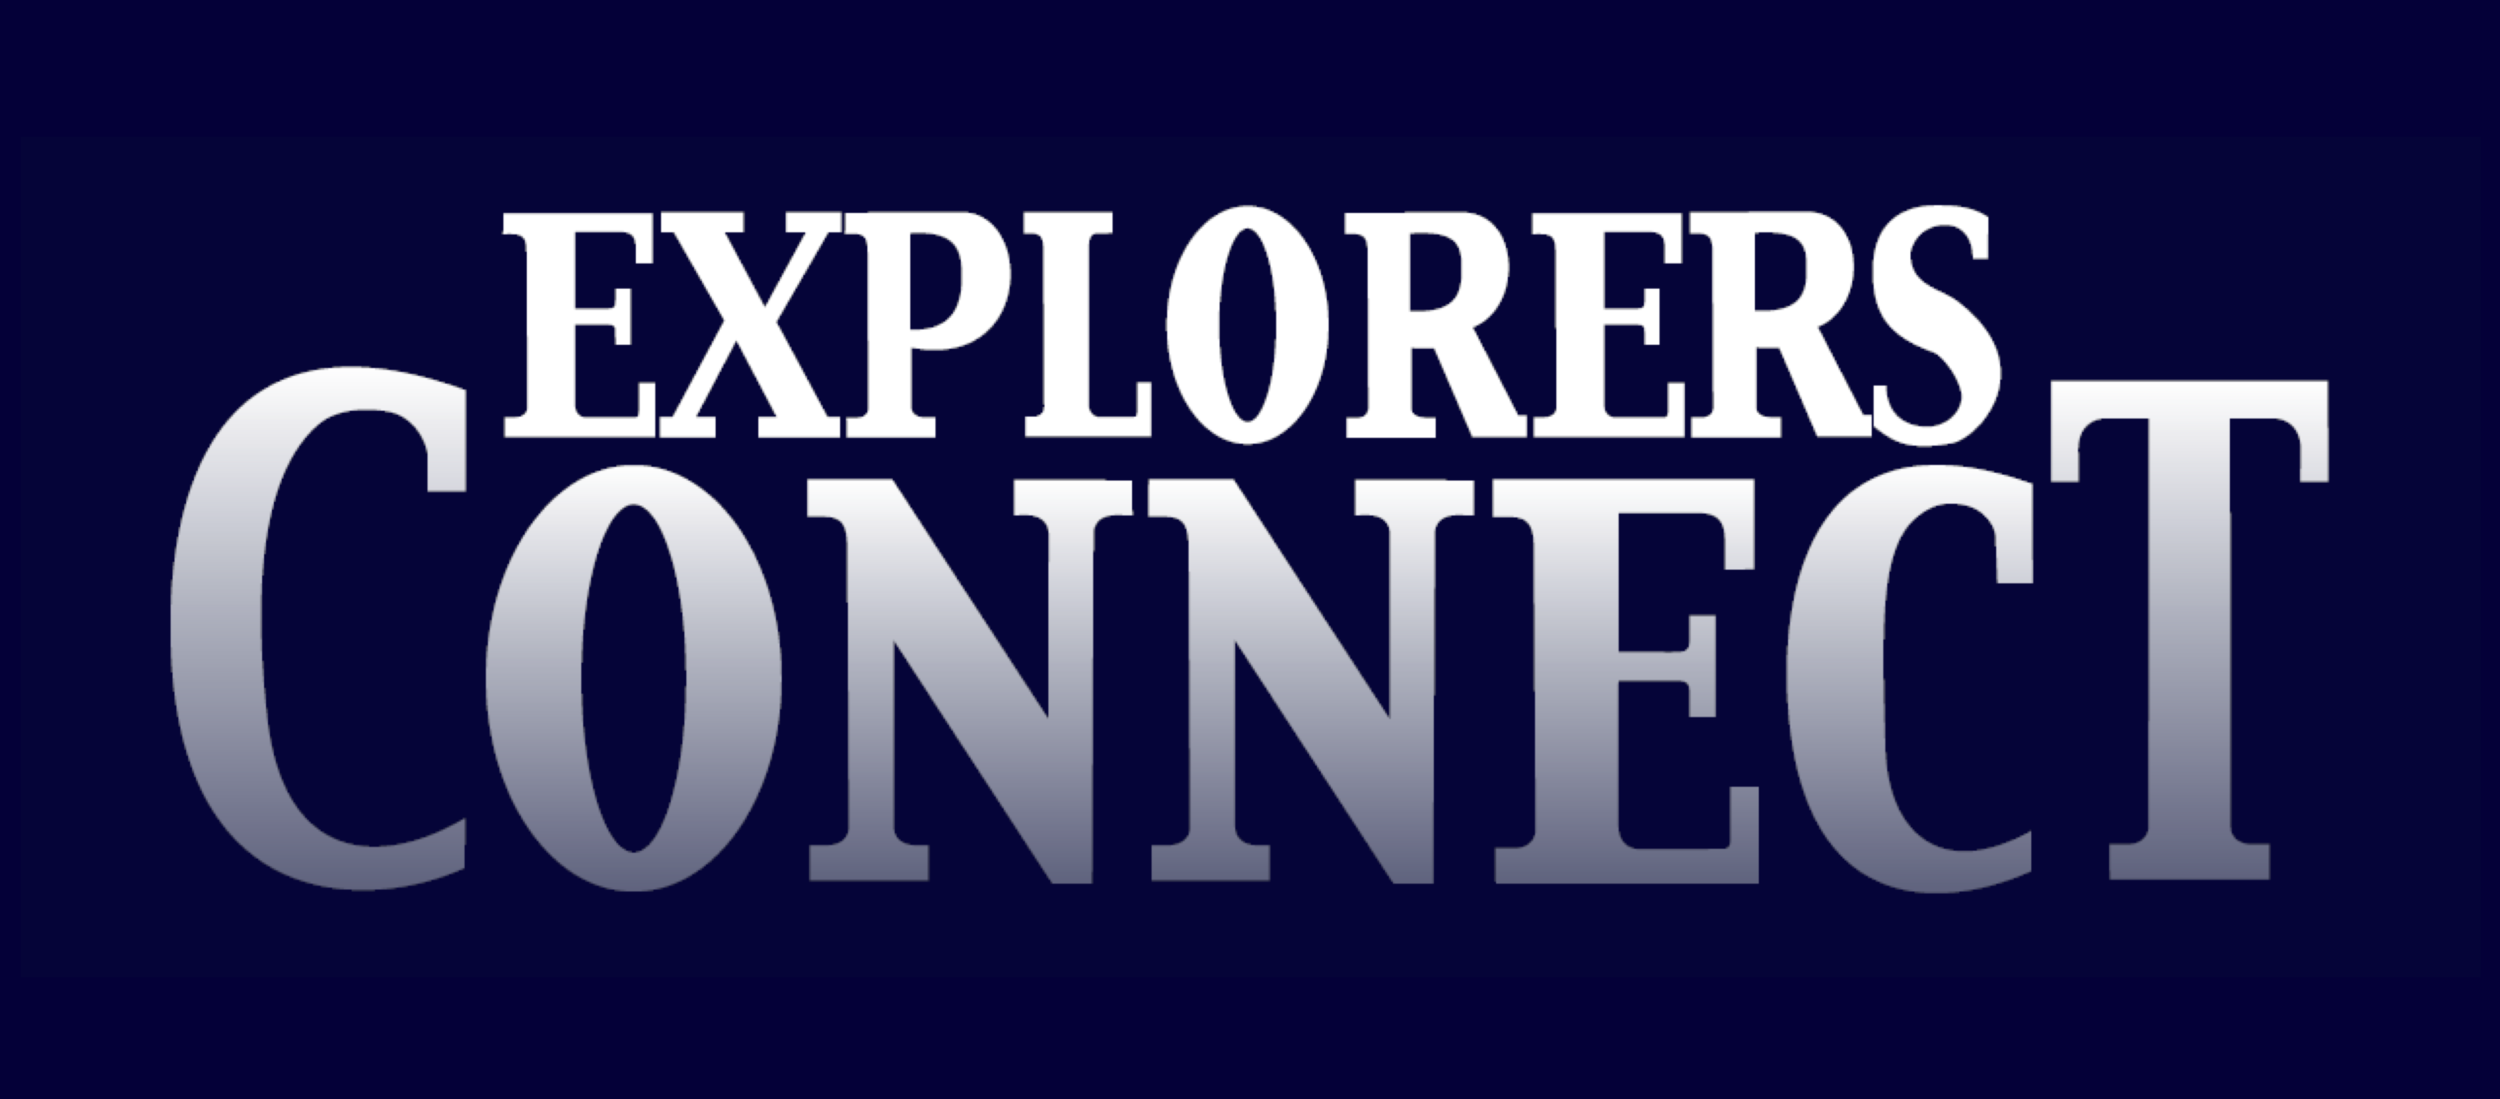 Explorers Connect